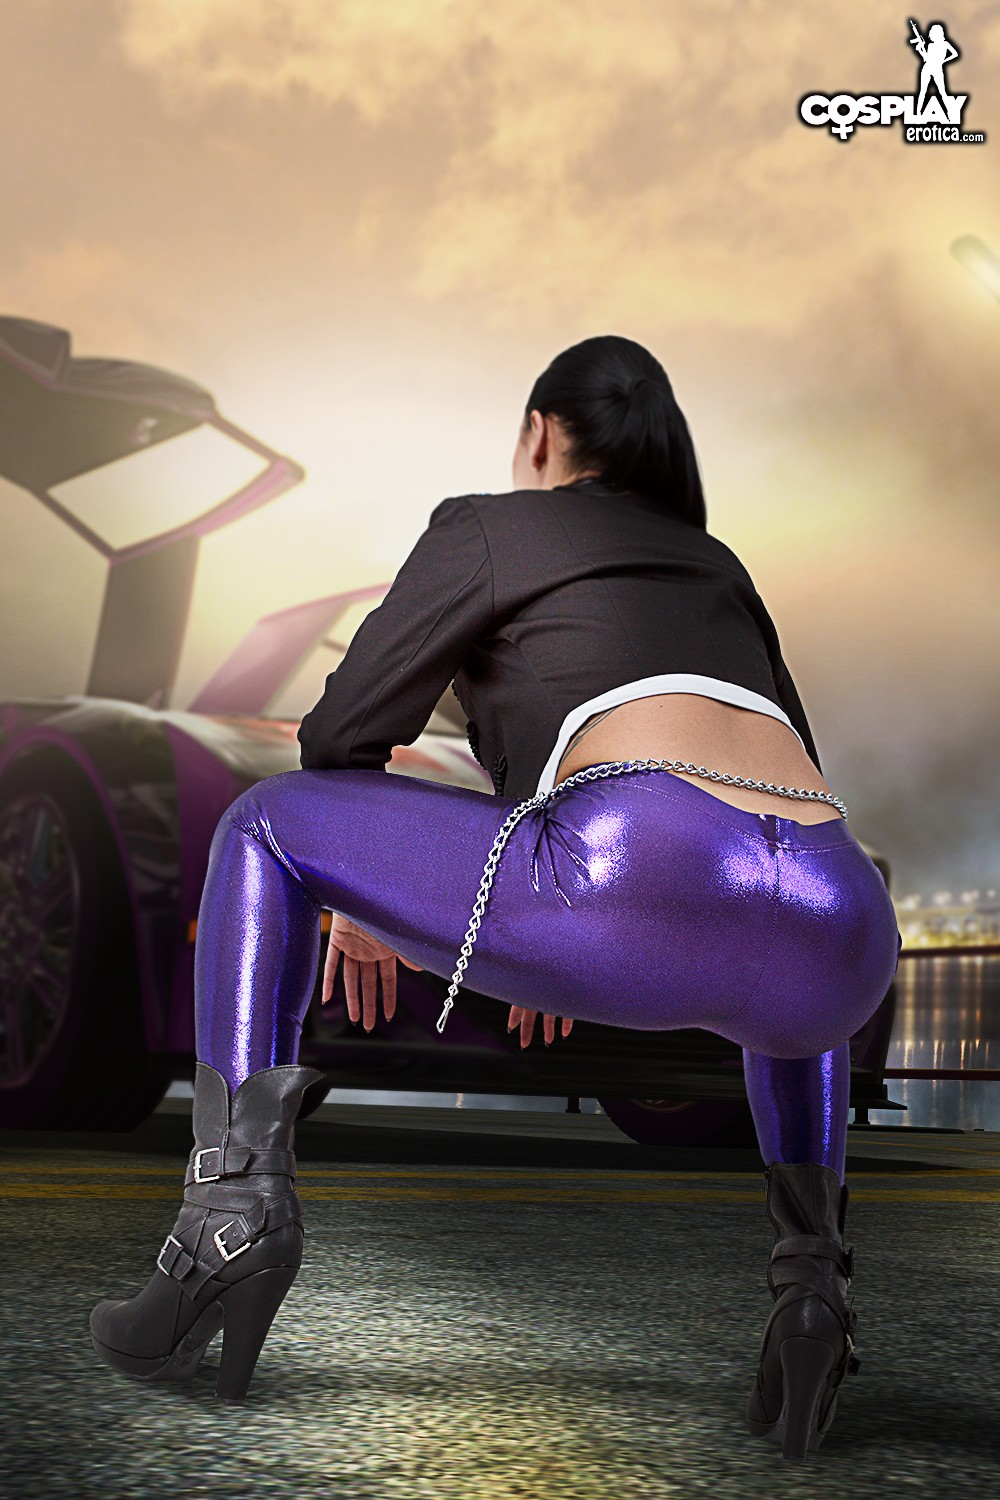 Saints row 2 porn naked strippers hentia photo